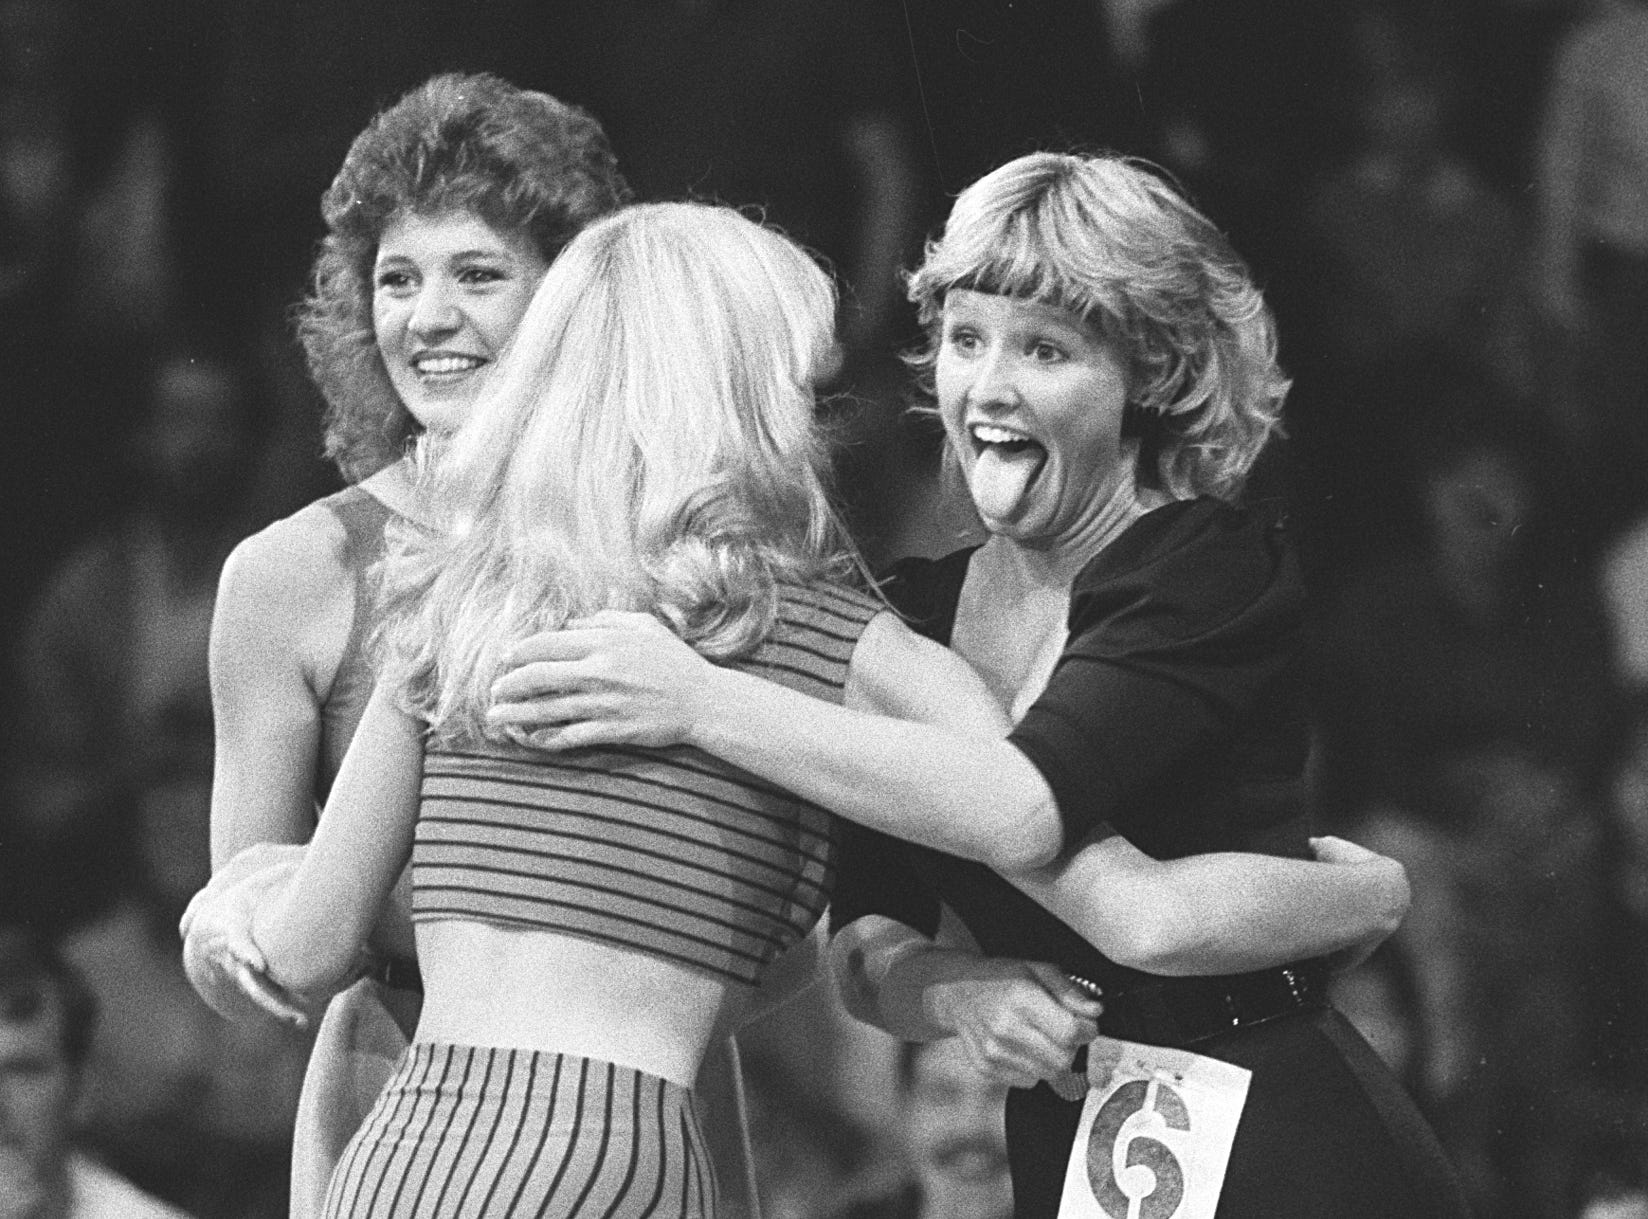 Dianne Barlow (right) reacts happily to the news that she's been selected as a Memphis Showboats cheerleader. 308 young women turned out for tryouts to become cheerleaders for the United States Football League team. The number was whittled down to 60 finalists and 24 were selected at Raleigh Springs Mall on October 22, 1983. Six alternates were also named.